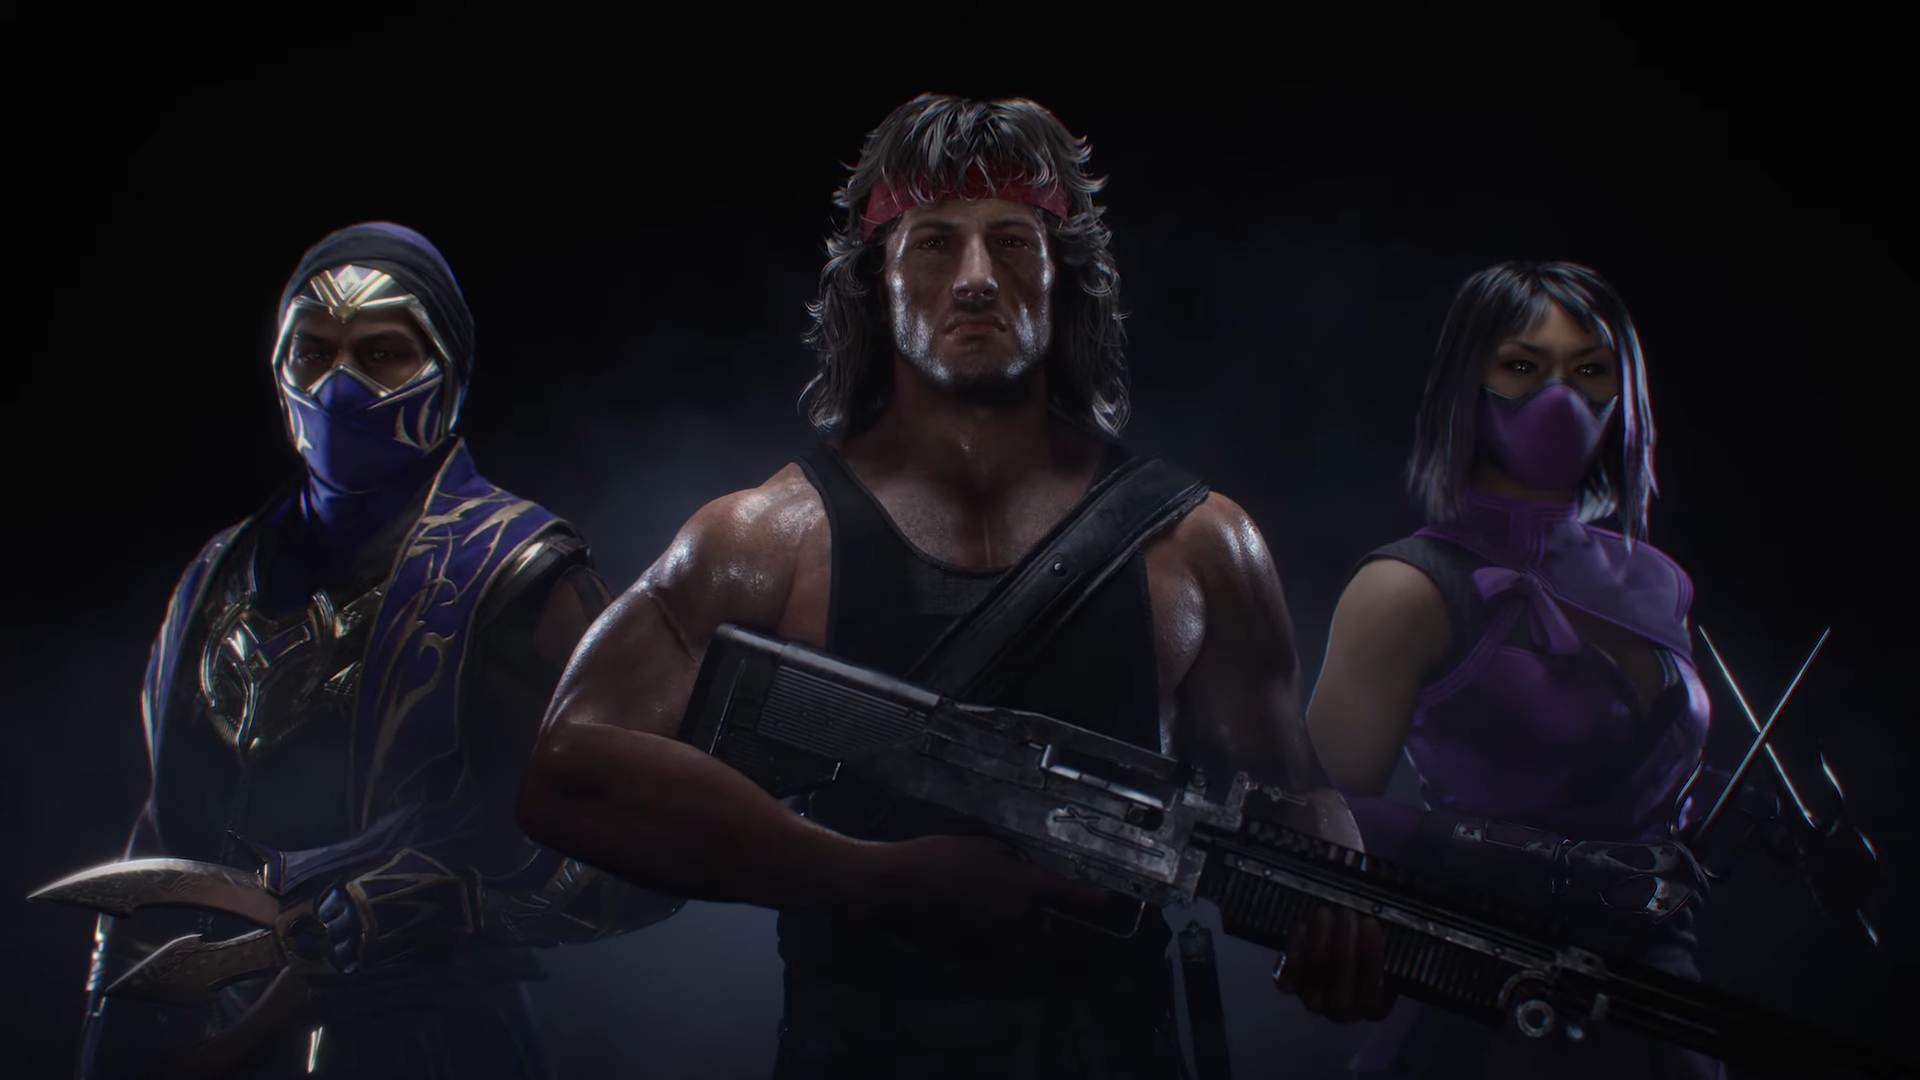 mortal kombat 11 ultimate heads to ps5 and xbox series x s mileena rain rambo